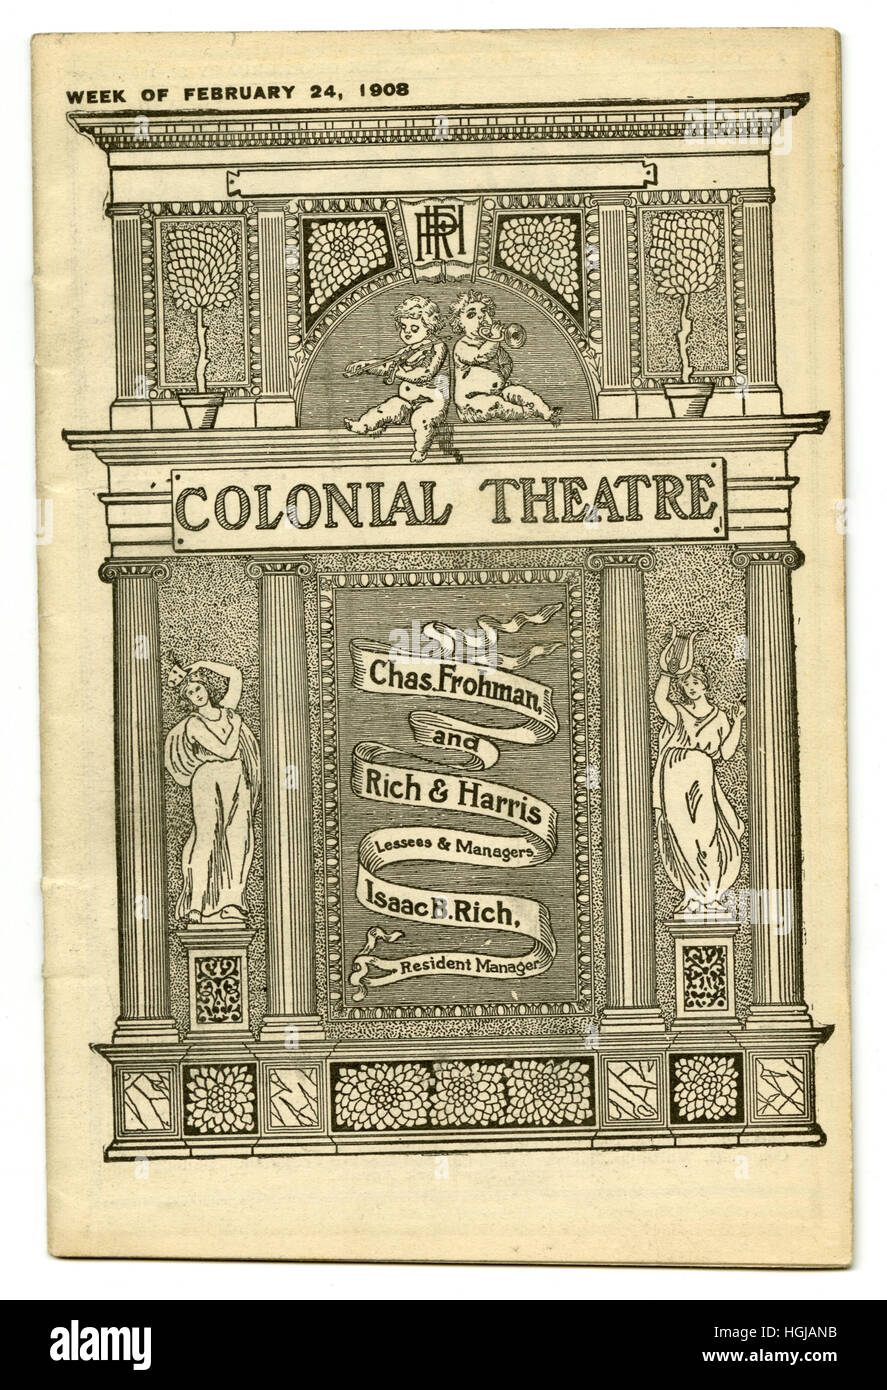 Antique theater program from Colonial Theatre, week of February 24, 1908, in Boston, Massachusetts. - Stock Image